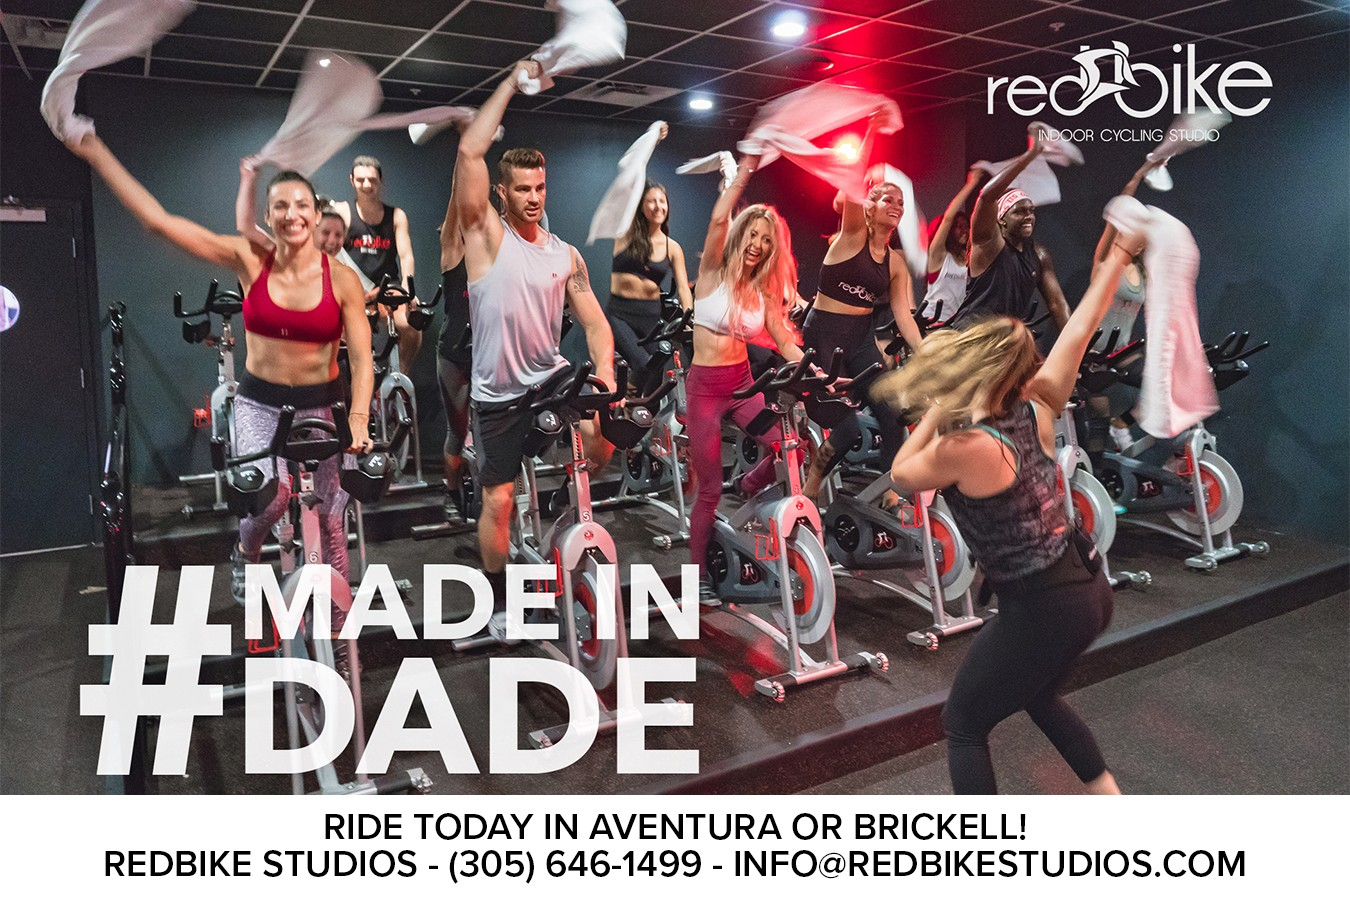 Redbike Indoor Cycling Studios : More than just exercise, it's a party on a bike!